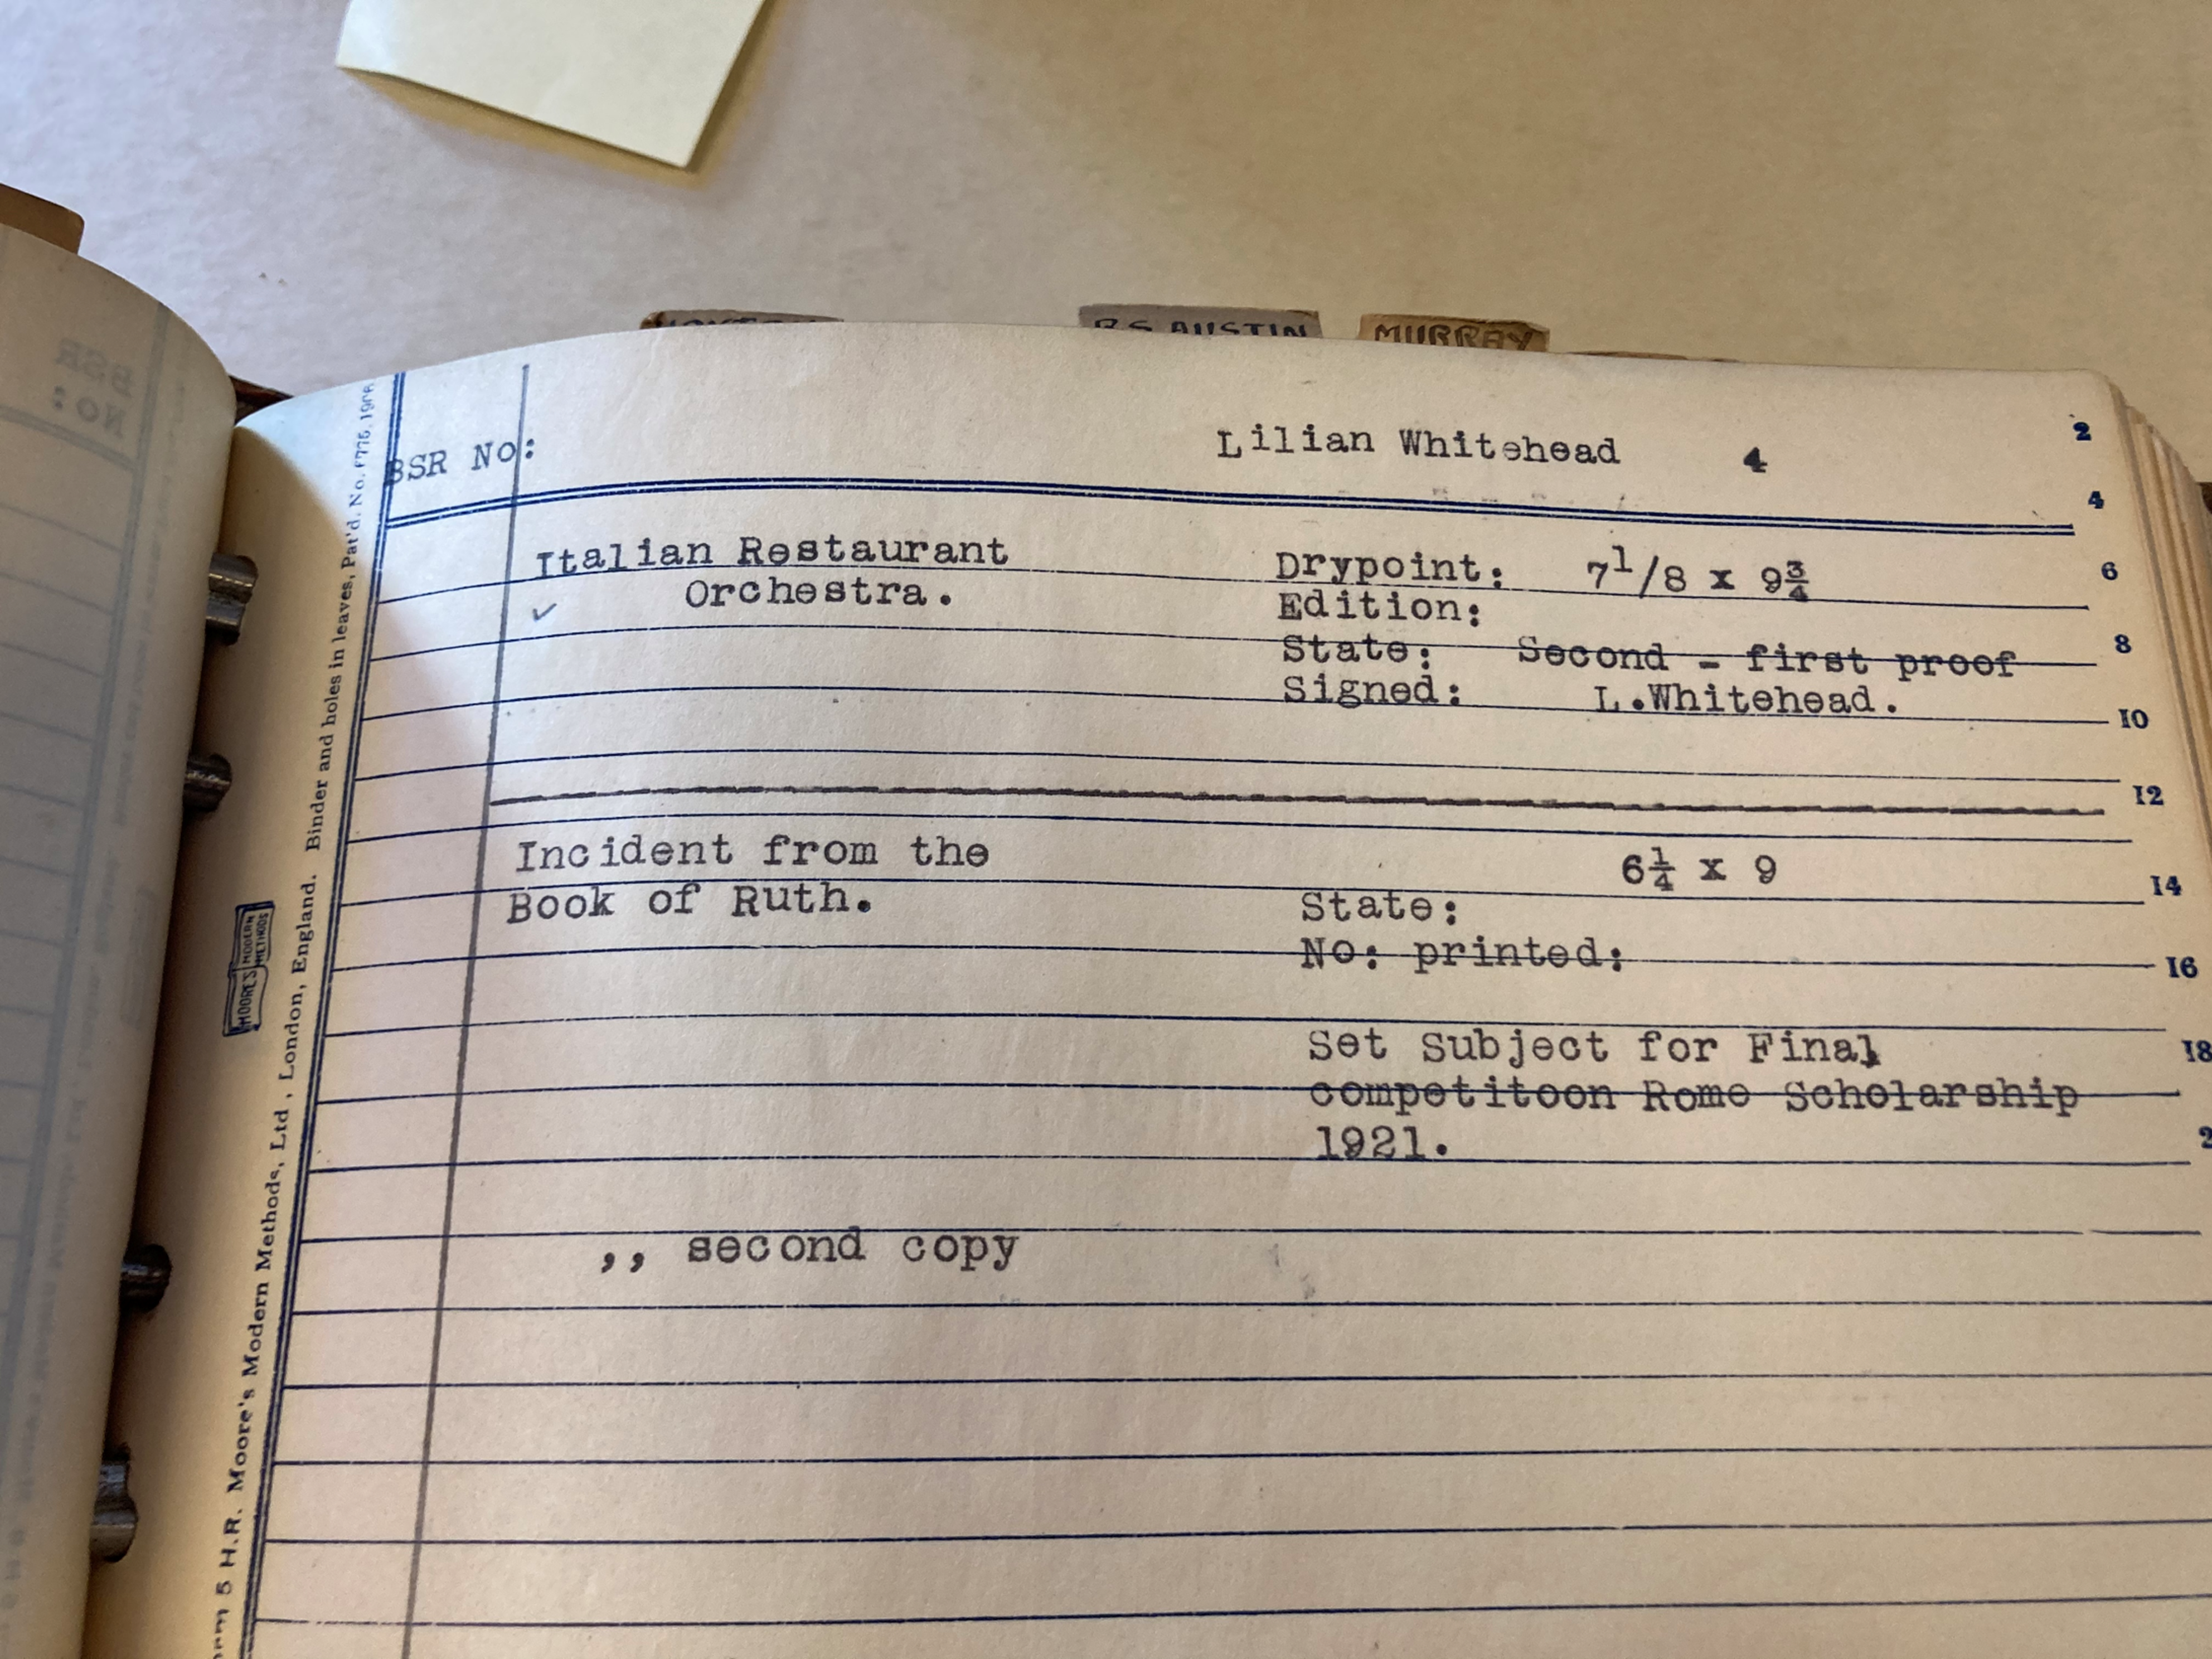 Lilian Whitehead Collection, catalogue 1921, BSR Fine Arts Archive